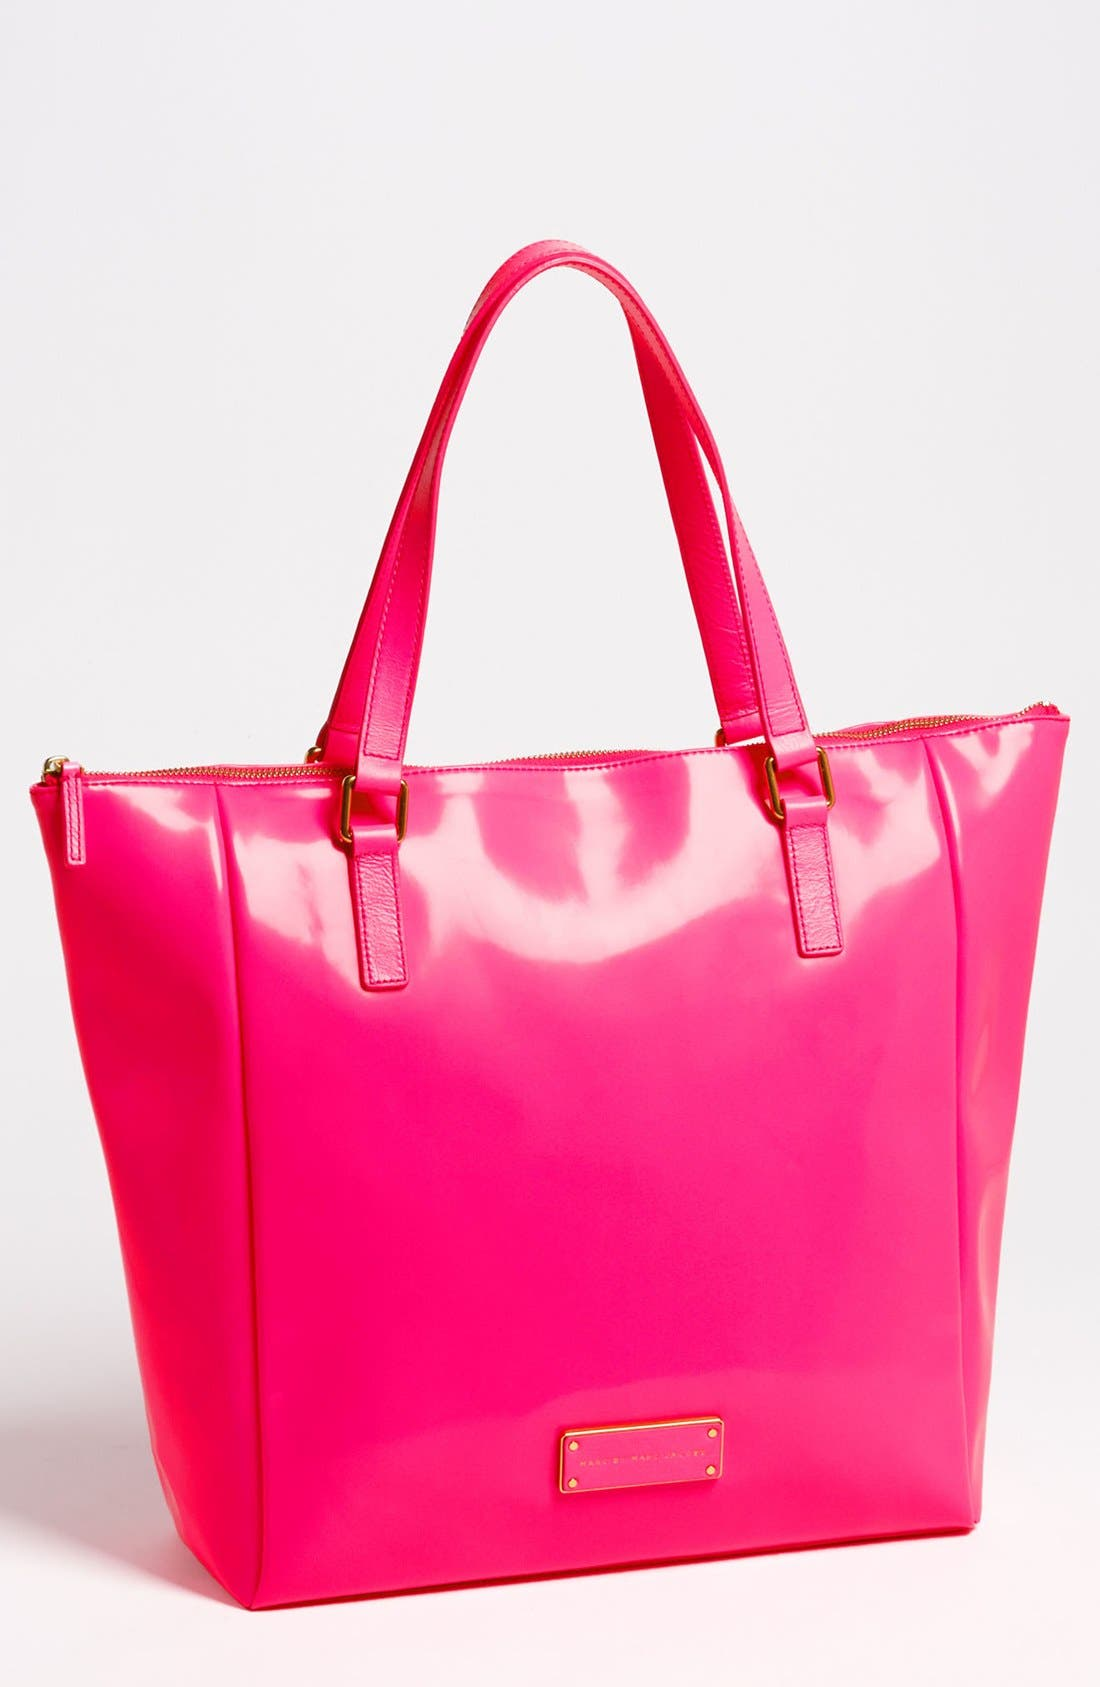 Main Image - MARC BY MARC JACOBS 'Take Me' Tote